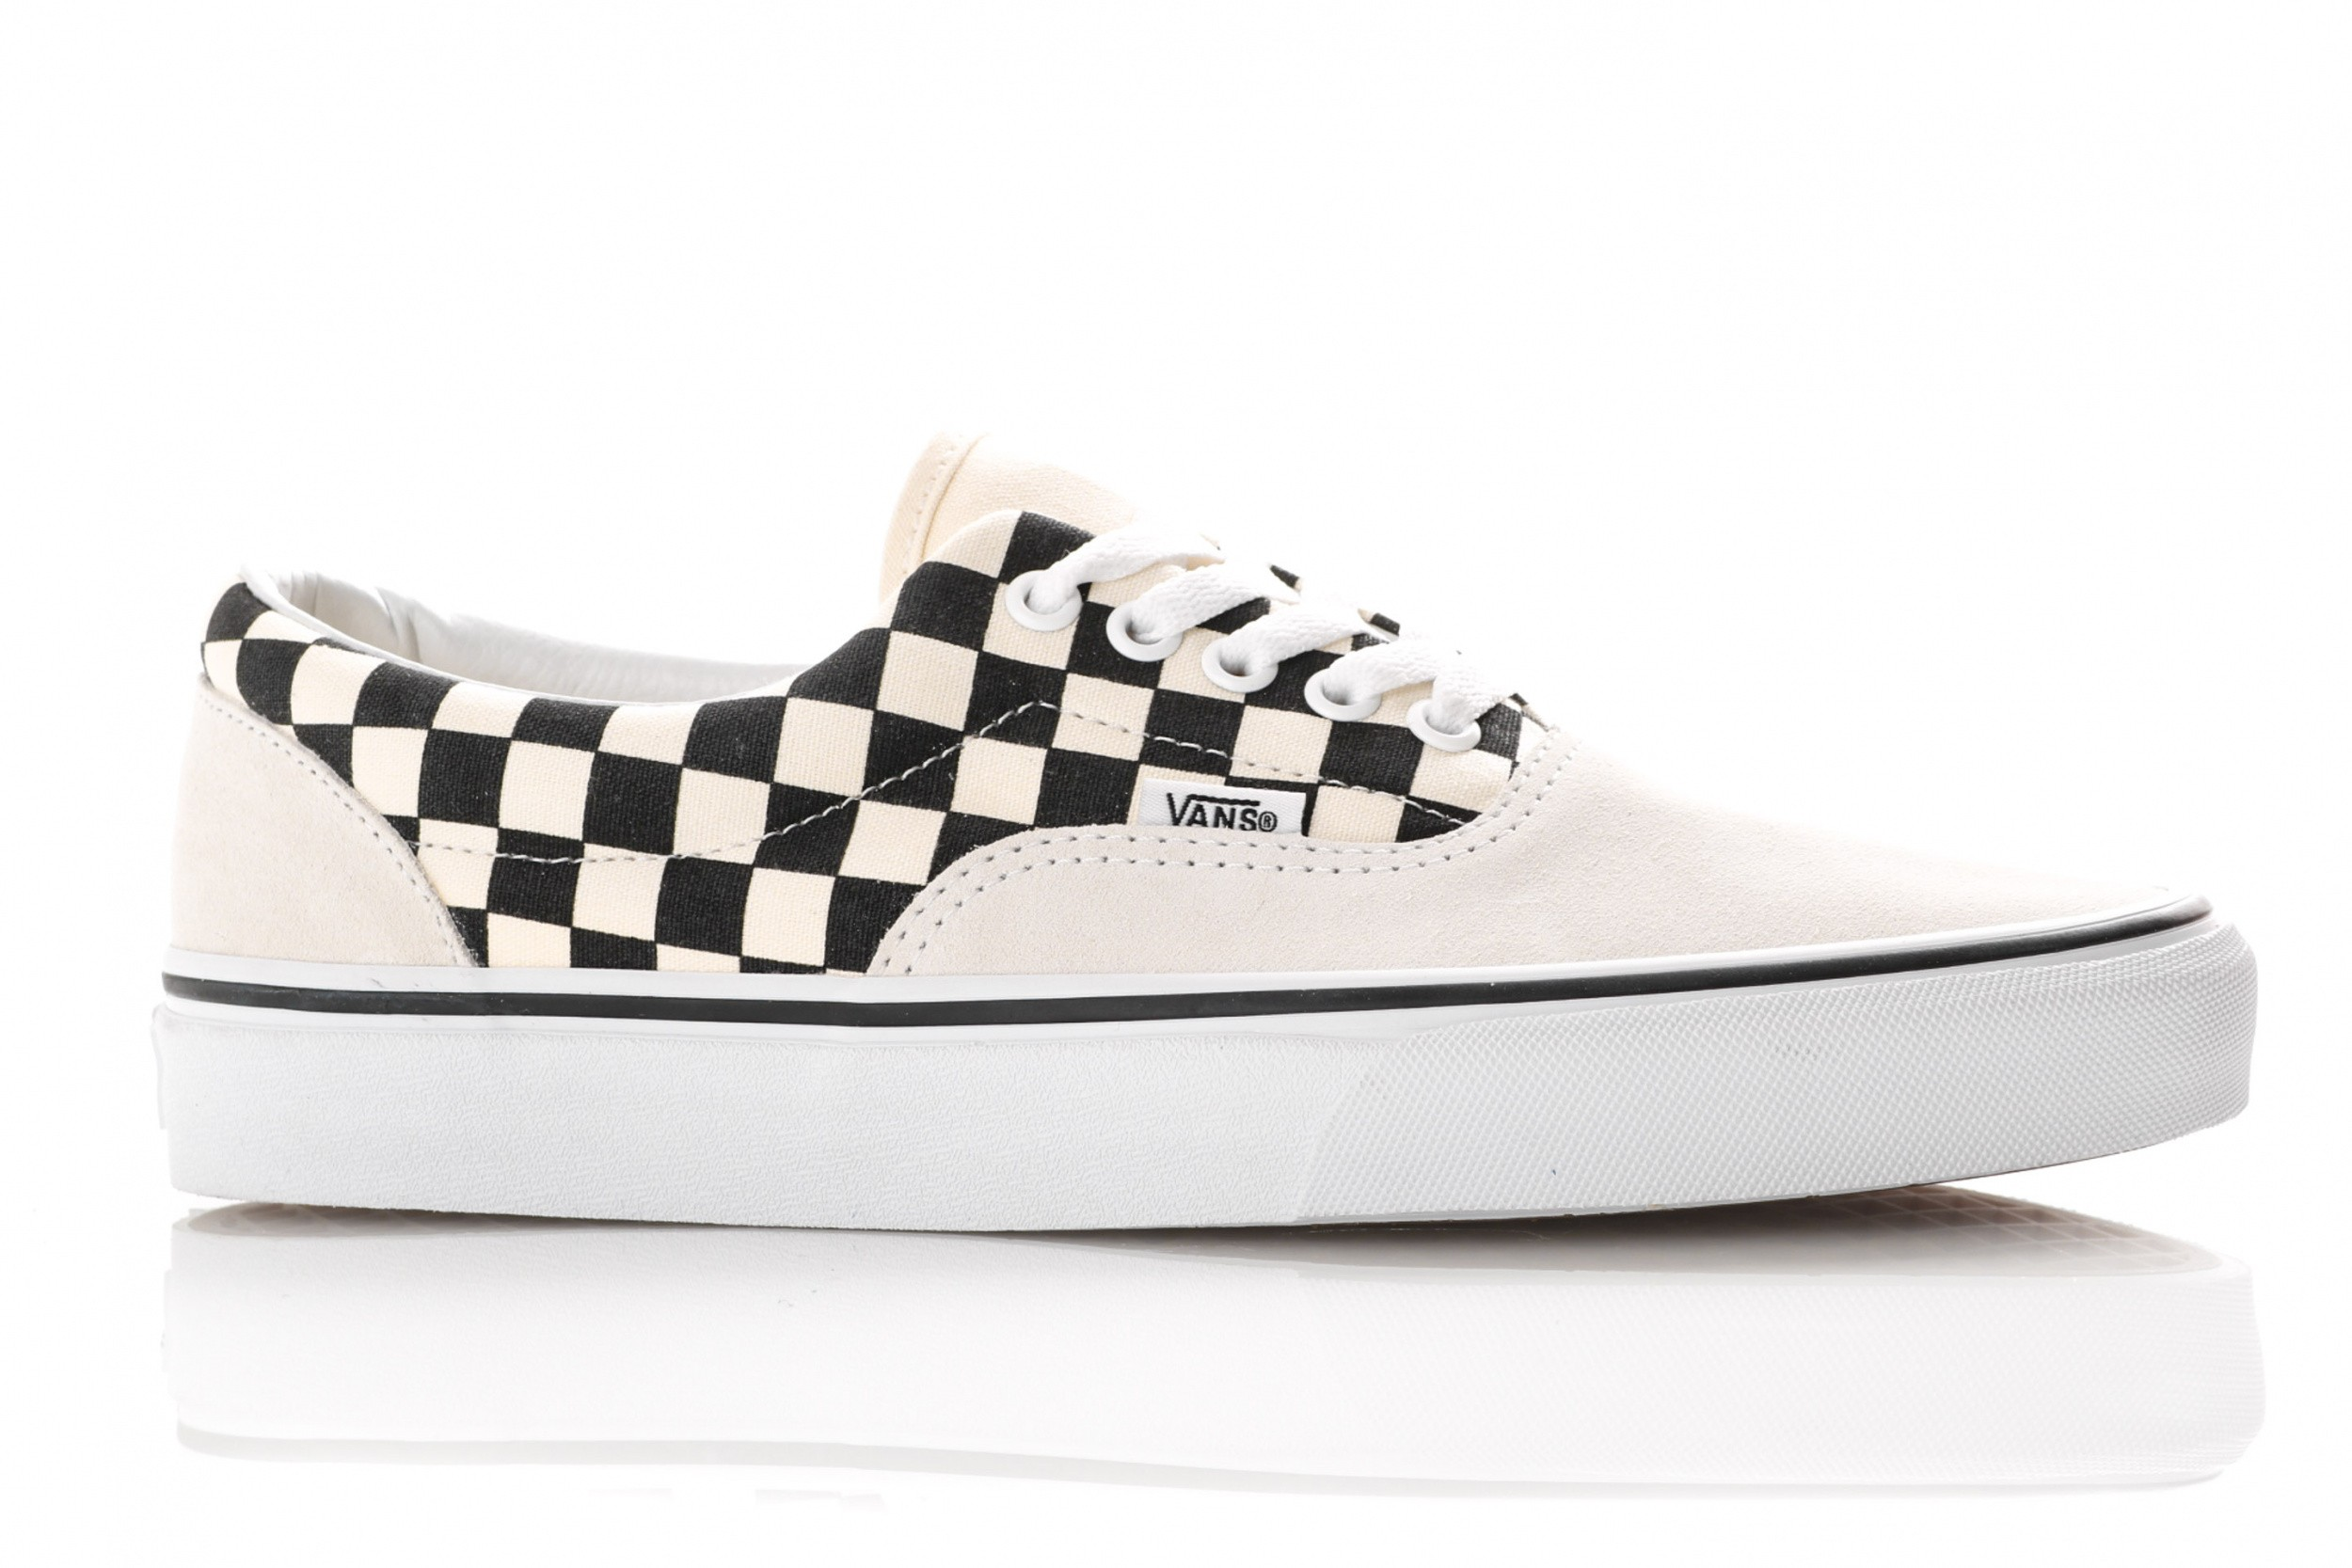 3f2abe662ce Vans Ua Era Vn0A38Frten Sneakers (Primary Check) Marshmallow/Black